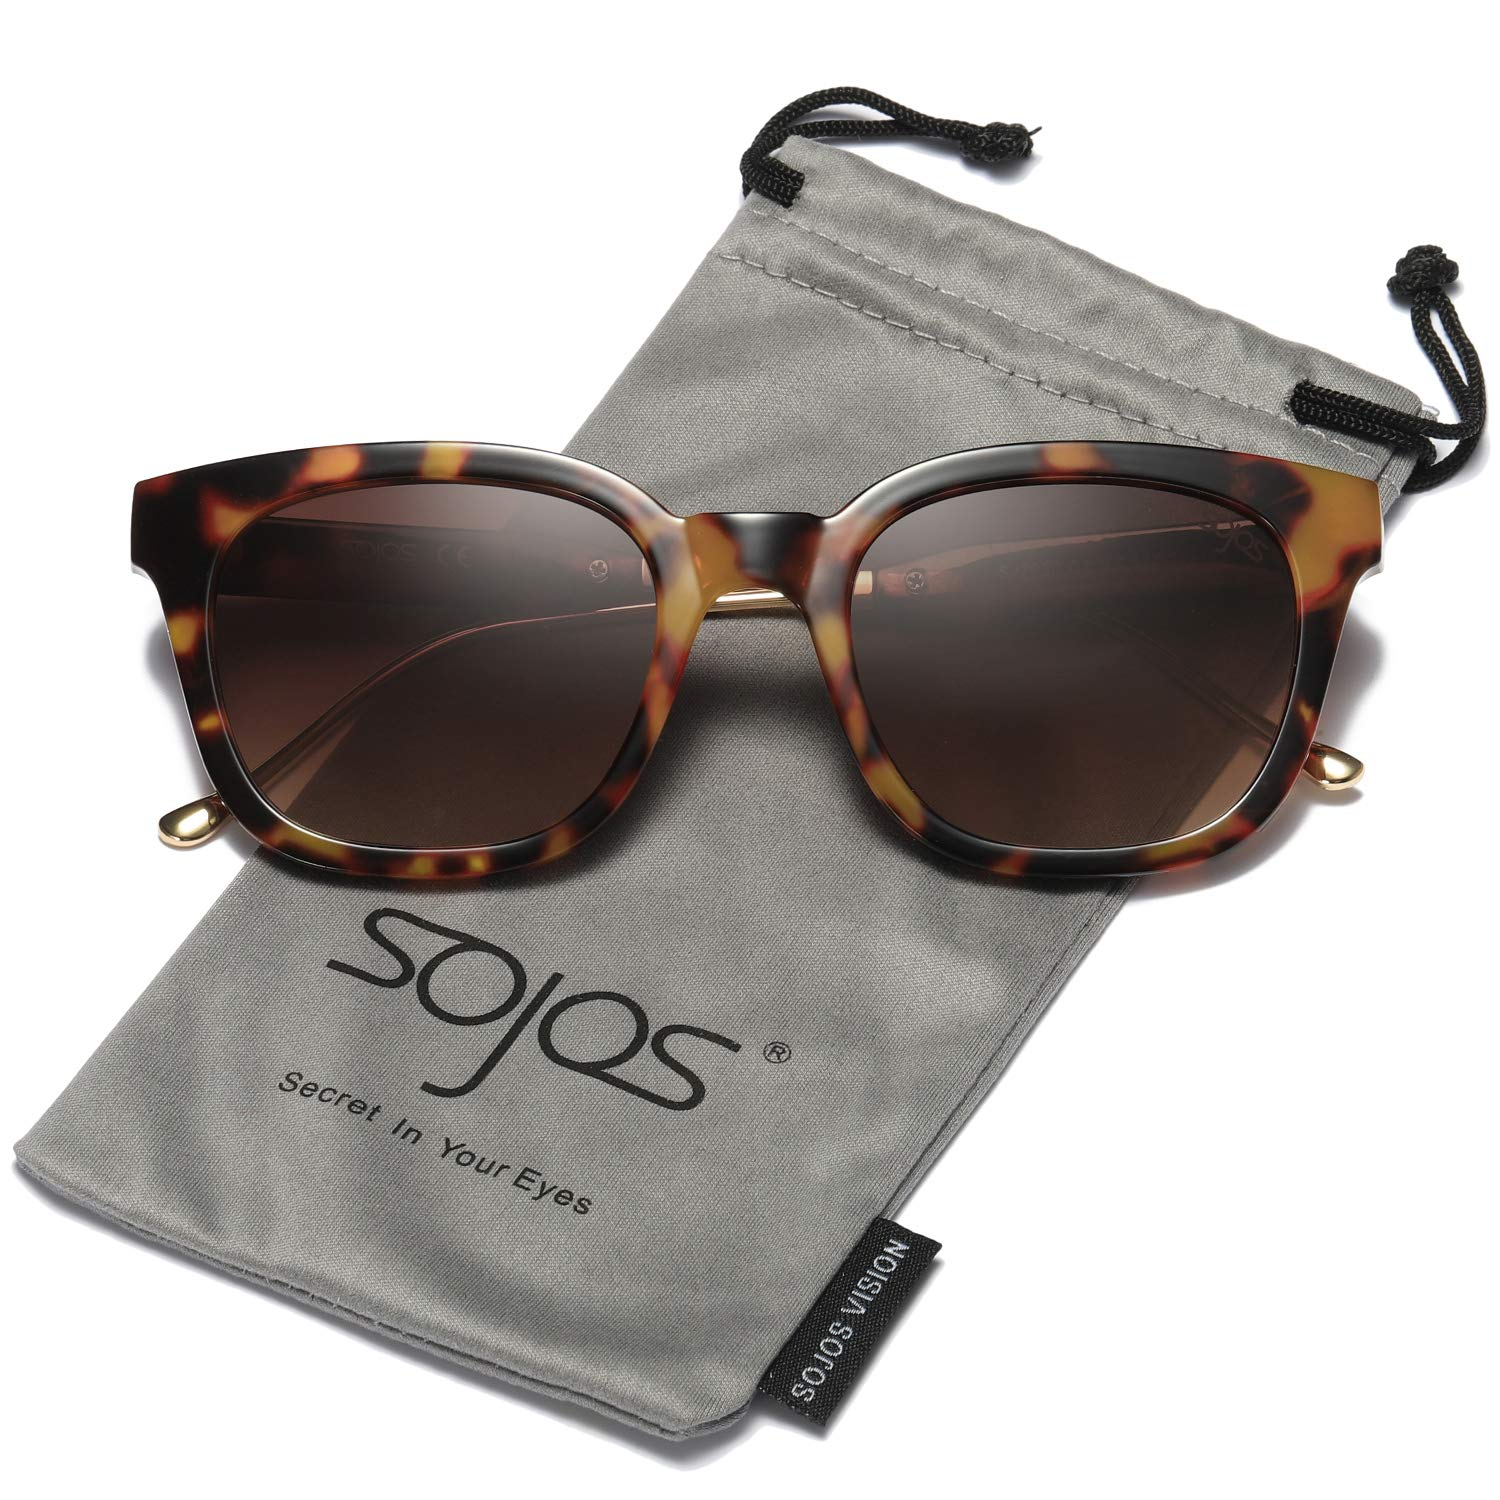 fe733320dd See all customer reviews · SOJOS Classic Polarized Sunglasses for Women Men  Mirrored Lens SJ2050 product image